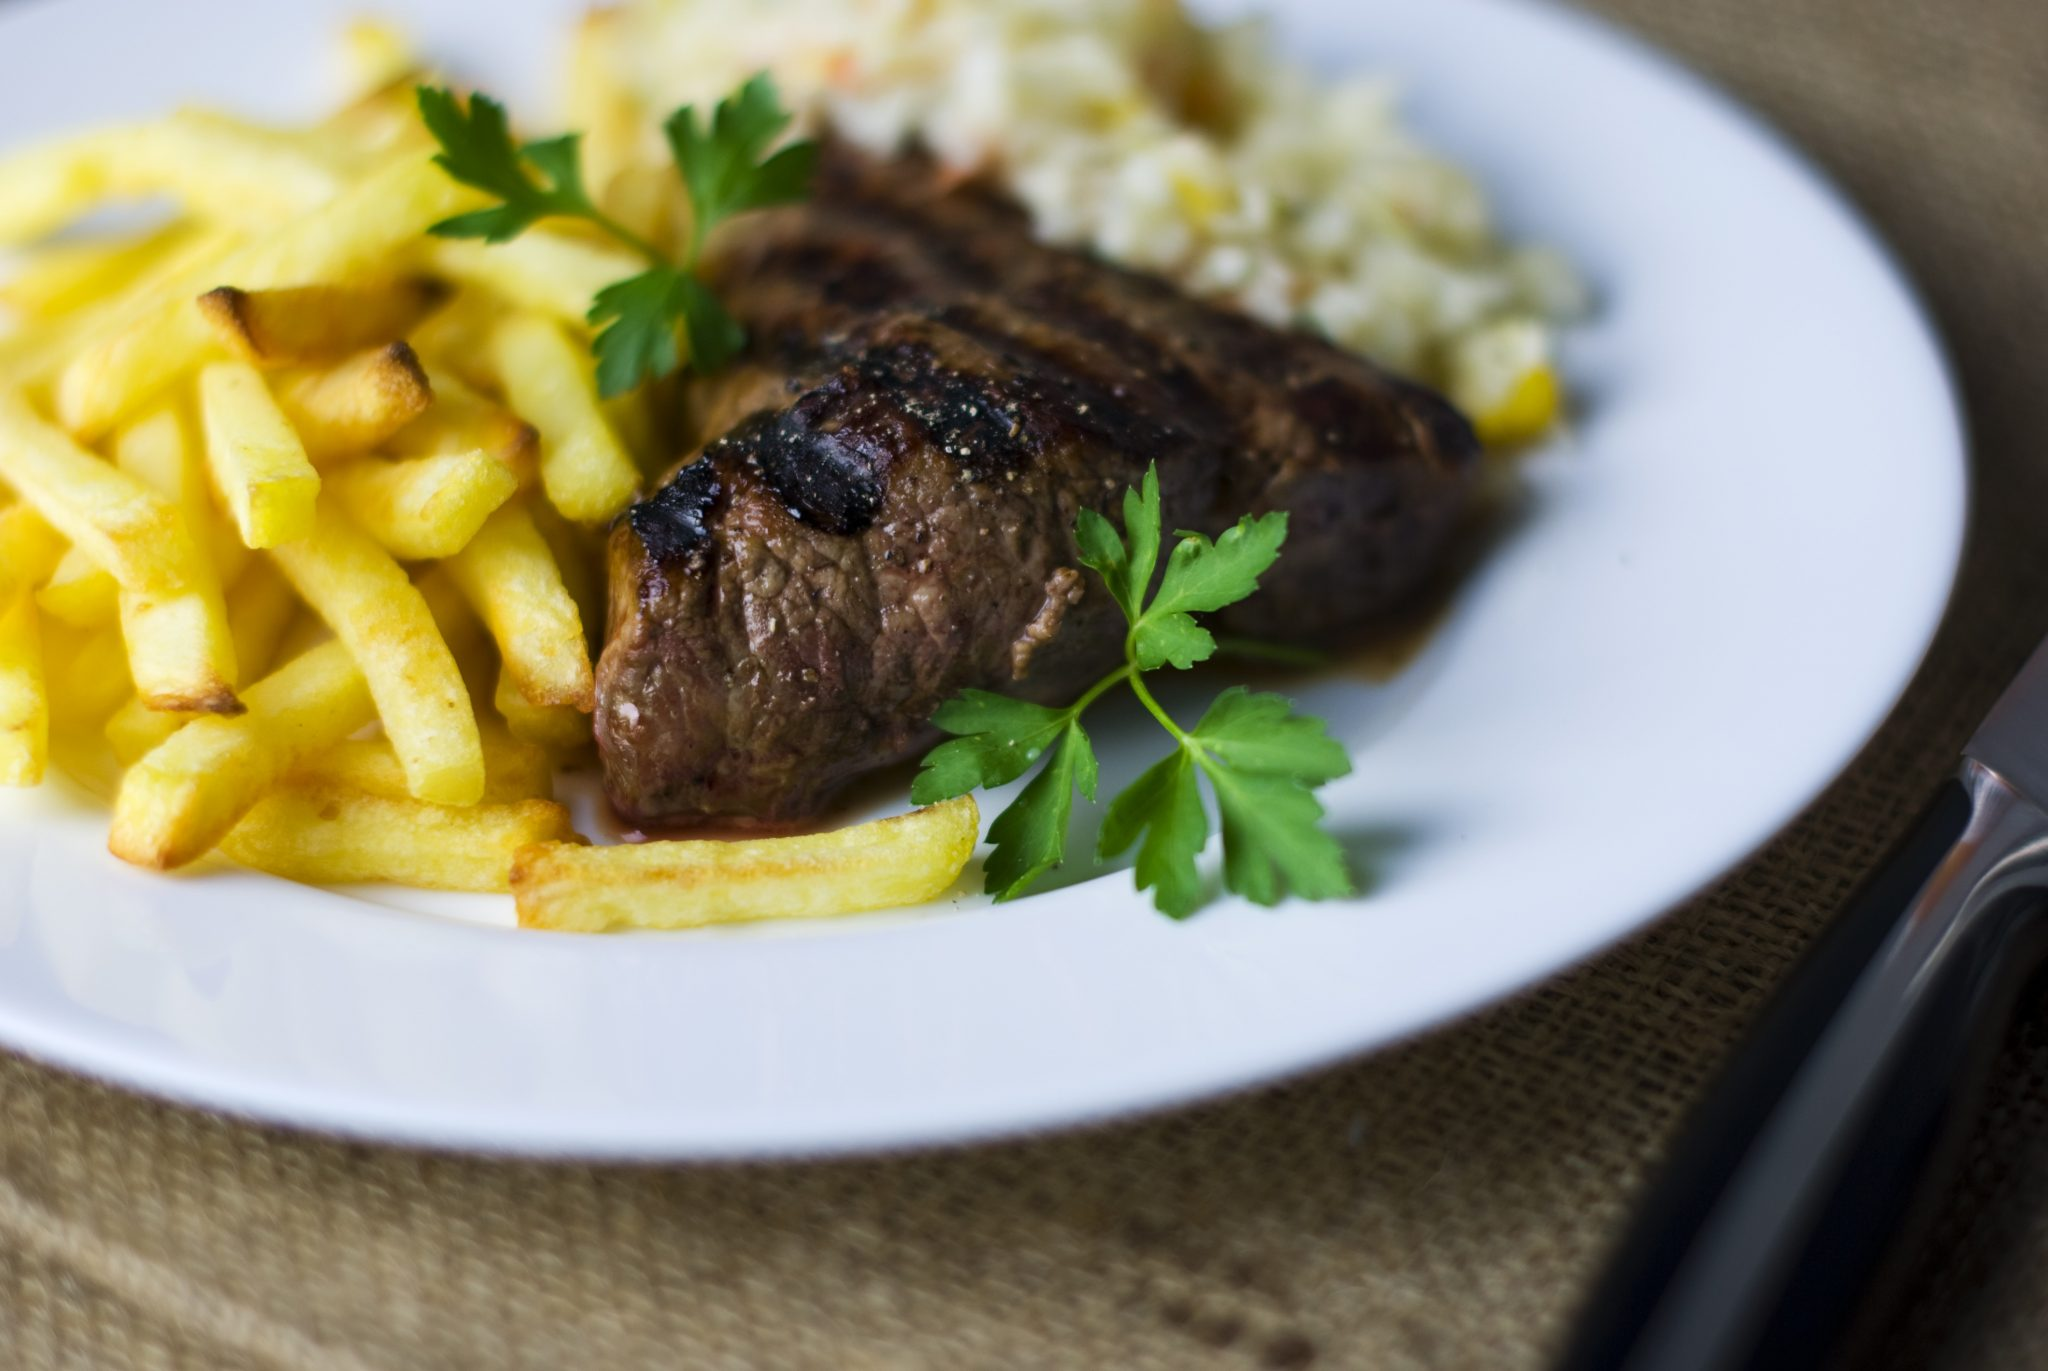 steak-french-fries-beef-salad_PD